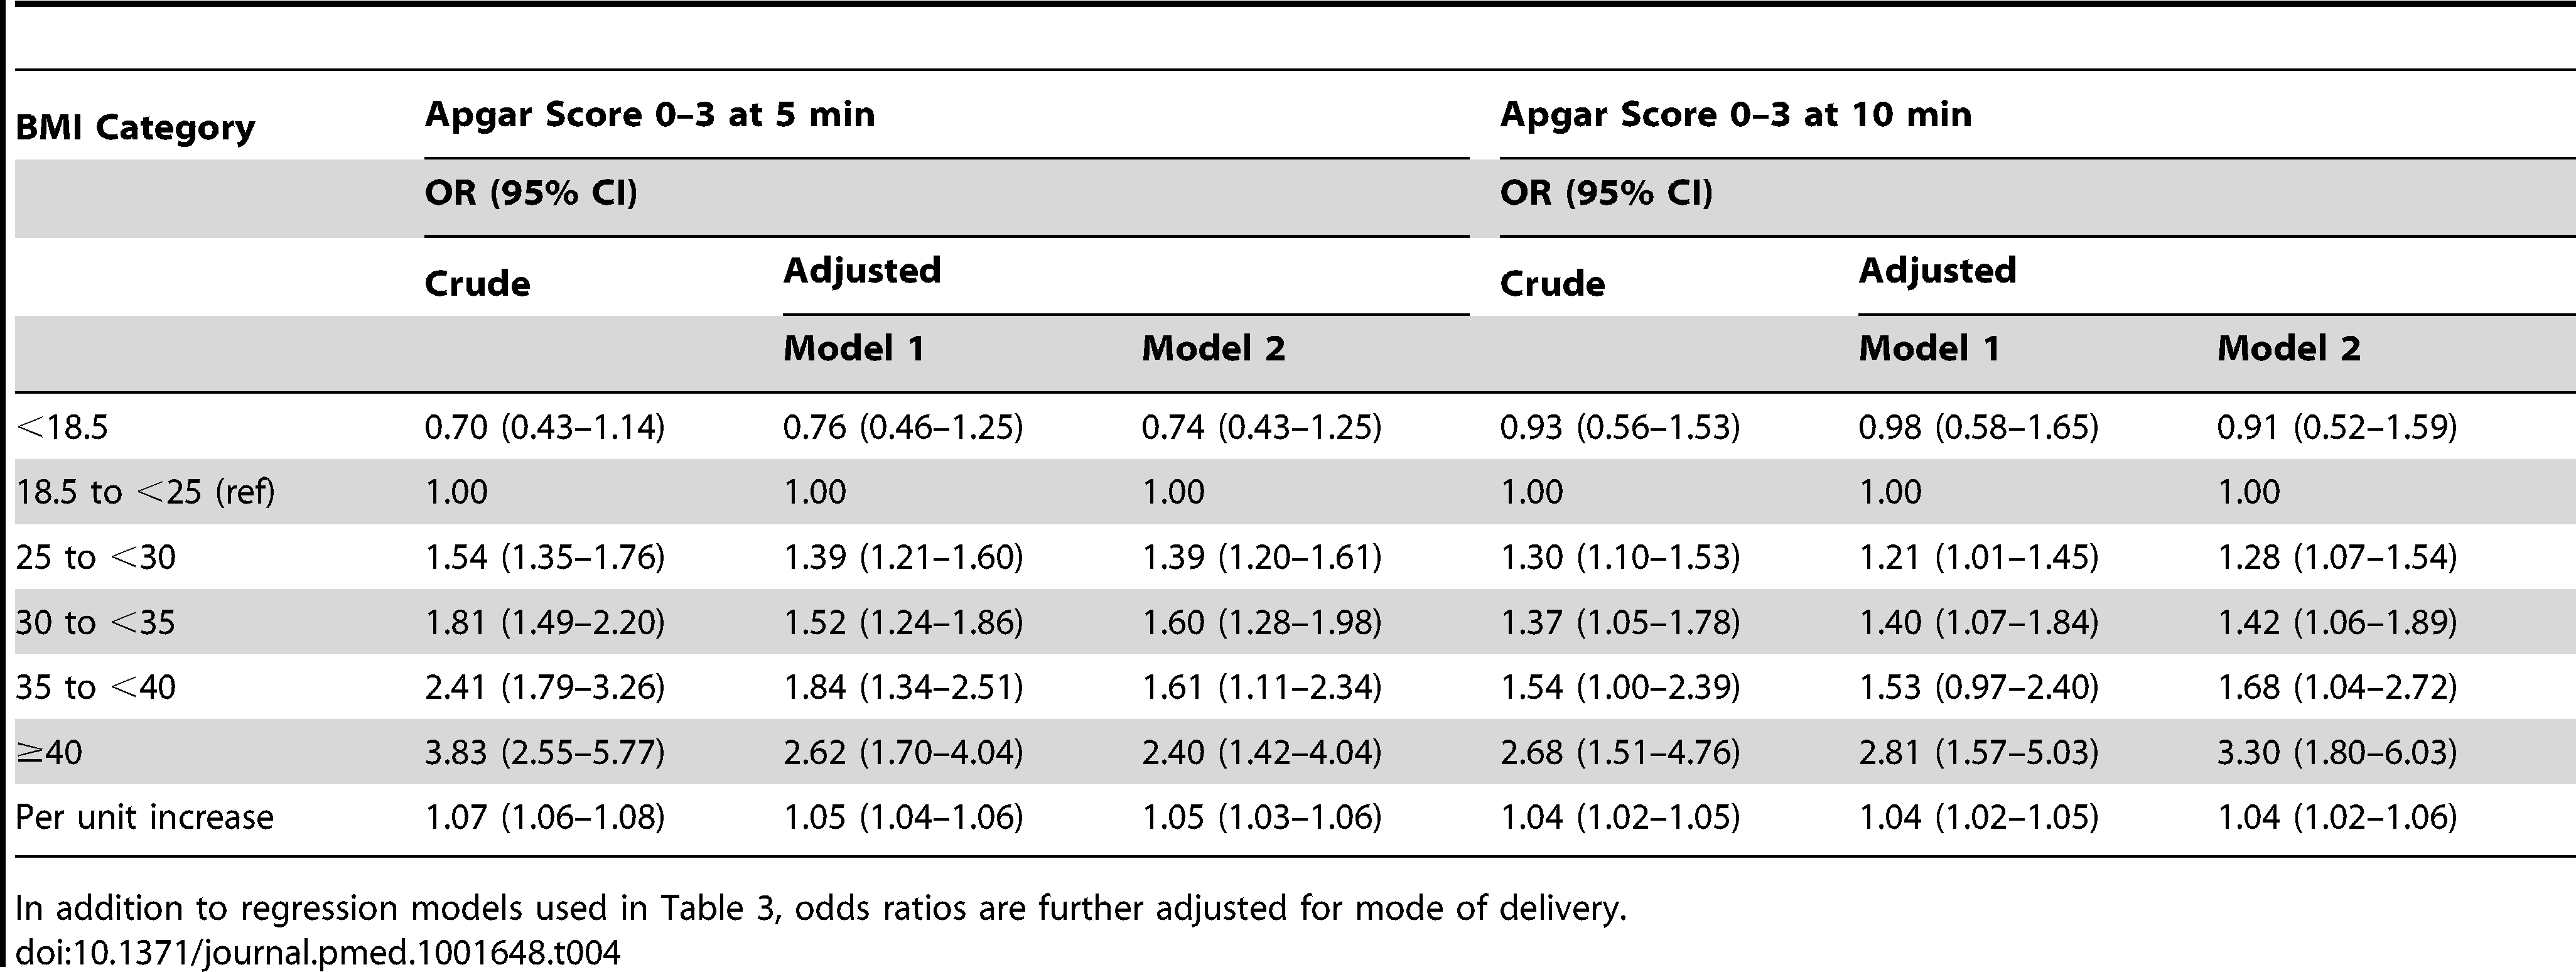 Maternal body-mass index and odds ratios for low Apgar scores at 5 and 10 minutes: live singleton term births in Sweden 1992–2010.